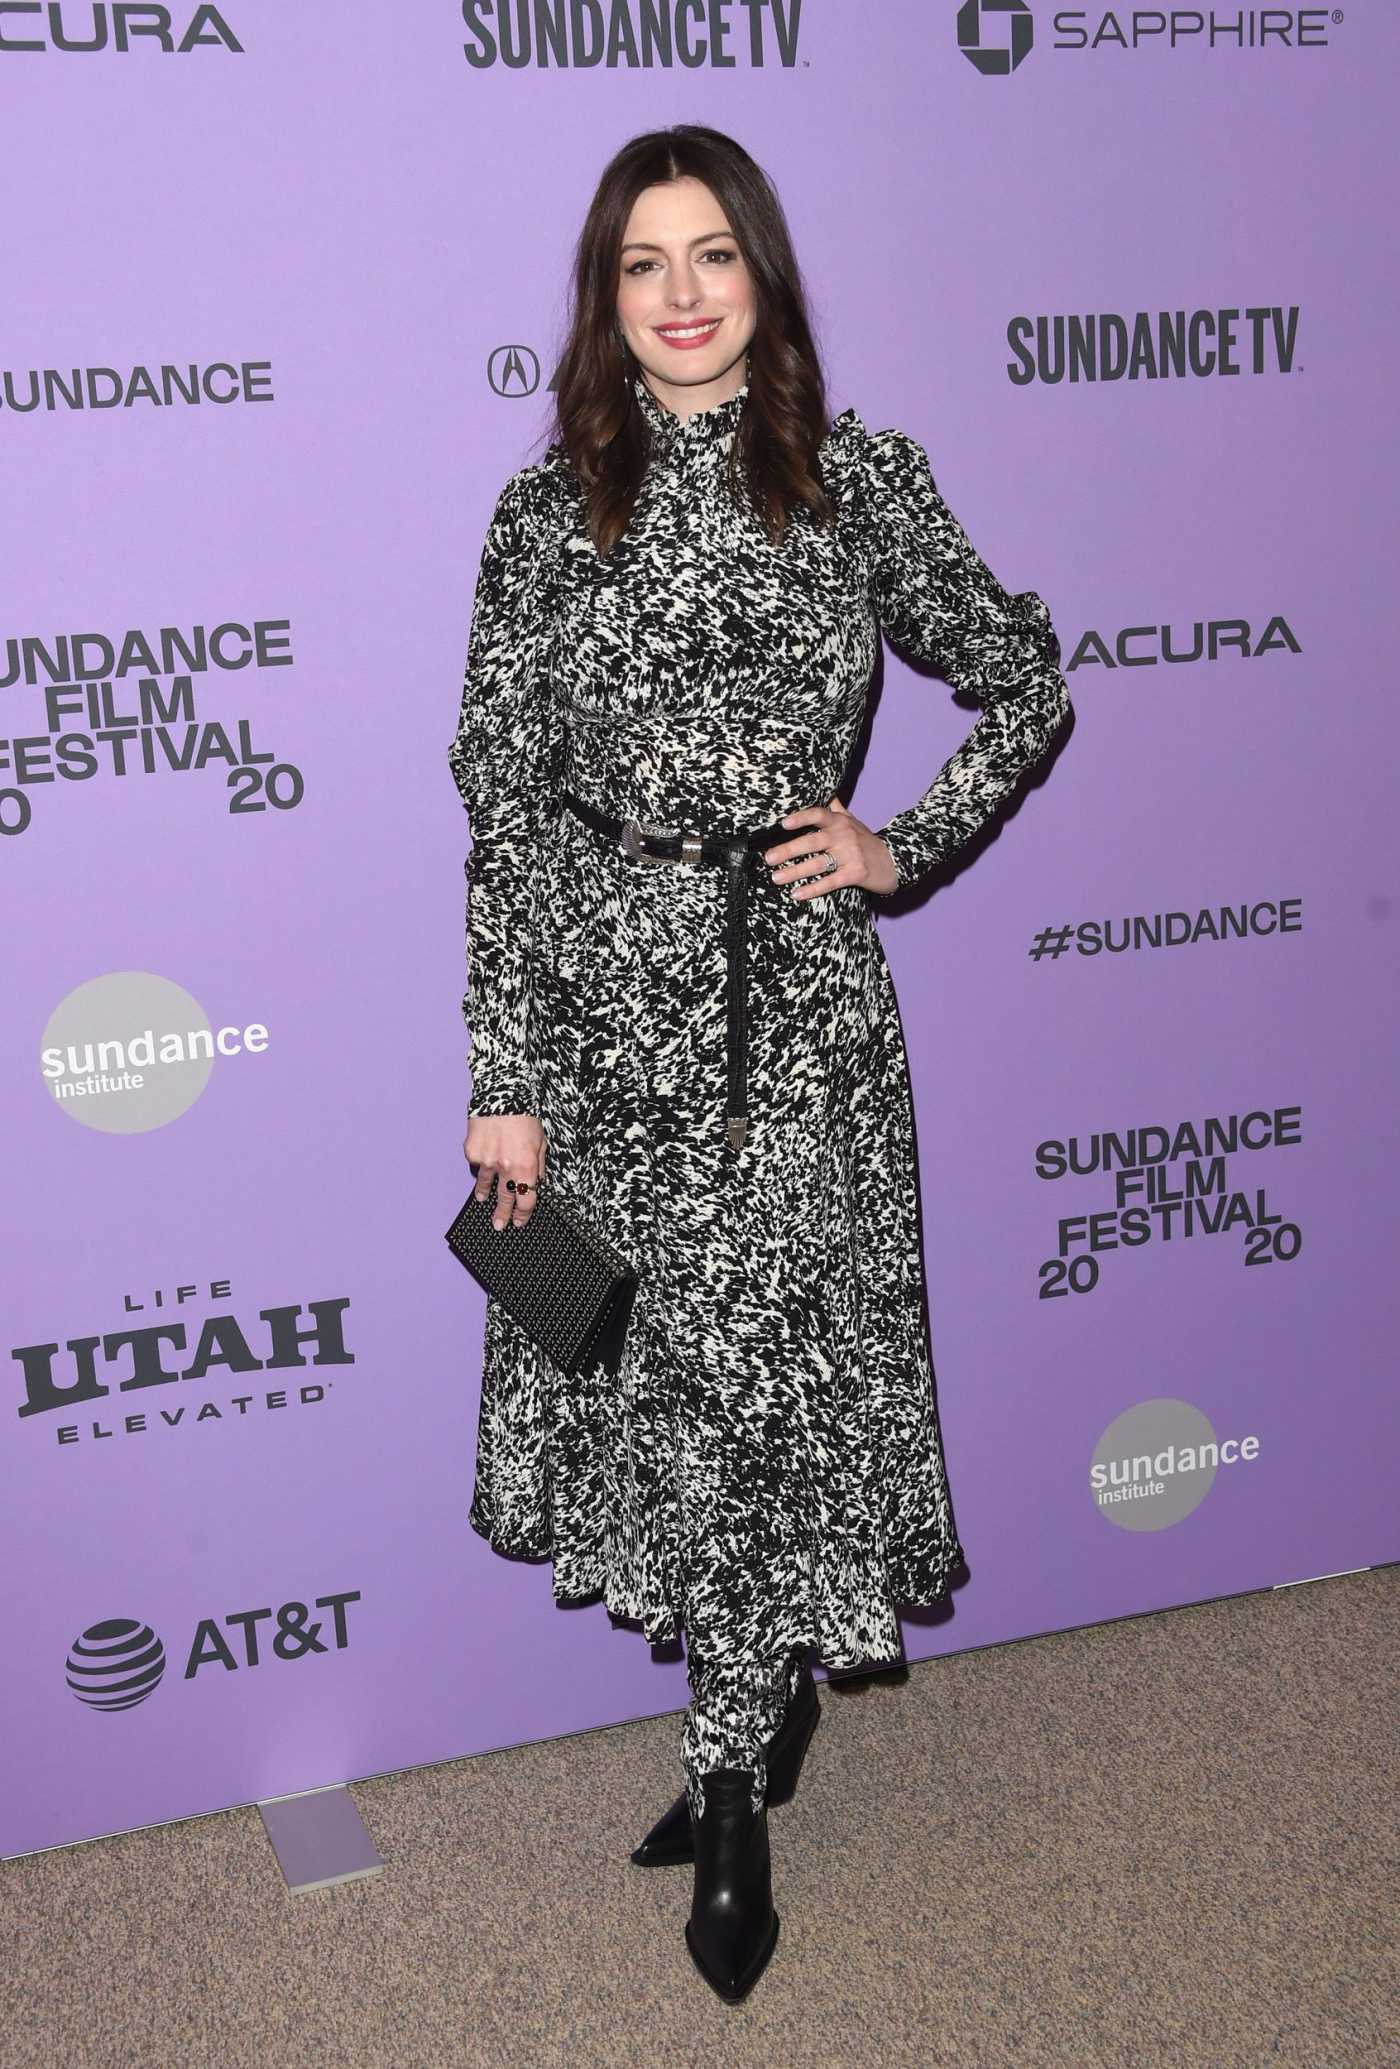 Anne Hathaway Attends The Last Thing He Wanted Premiere During 2020 Sundance Film Festival in Park City 01/27/2020